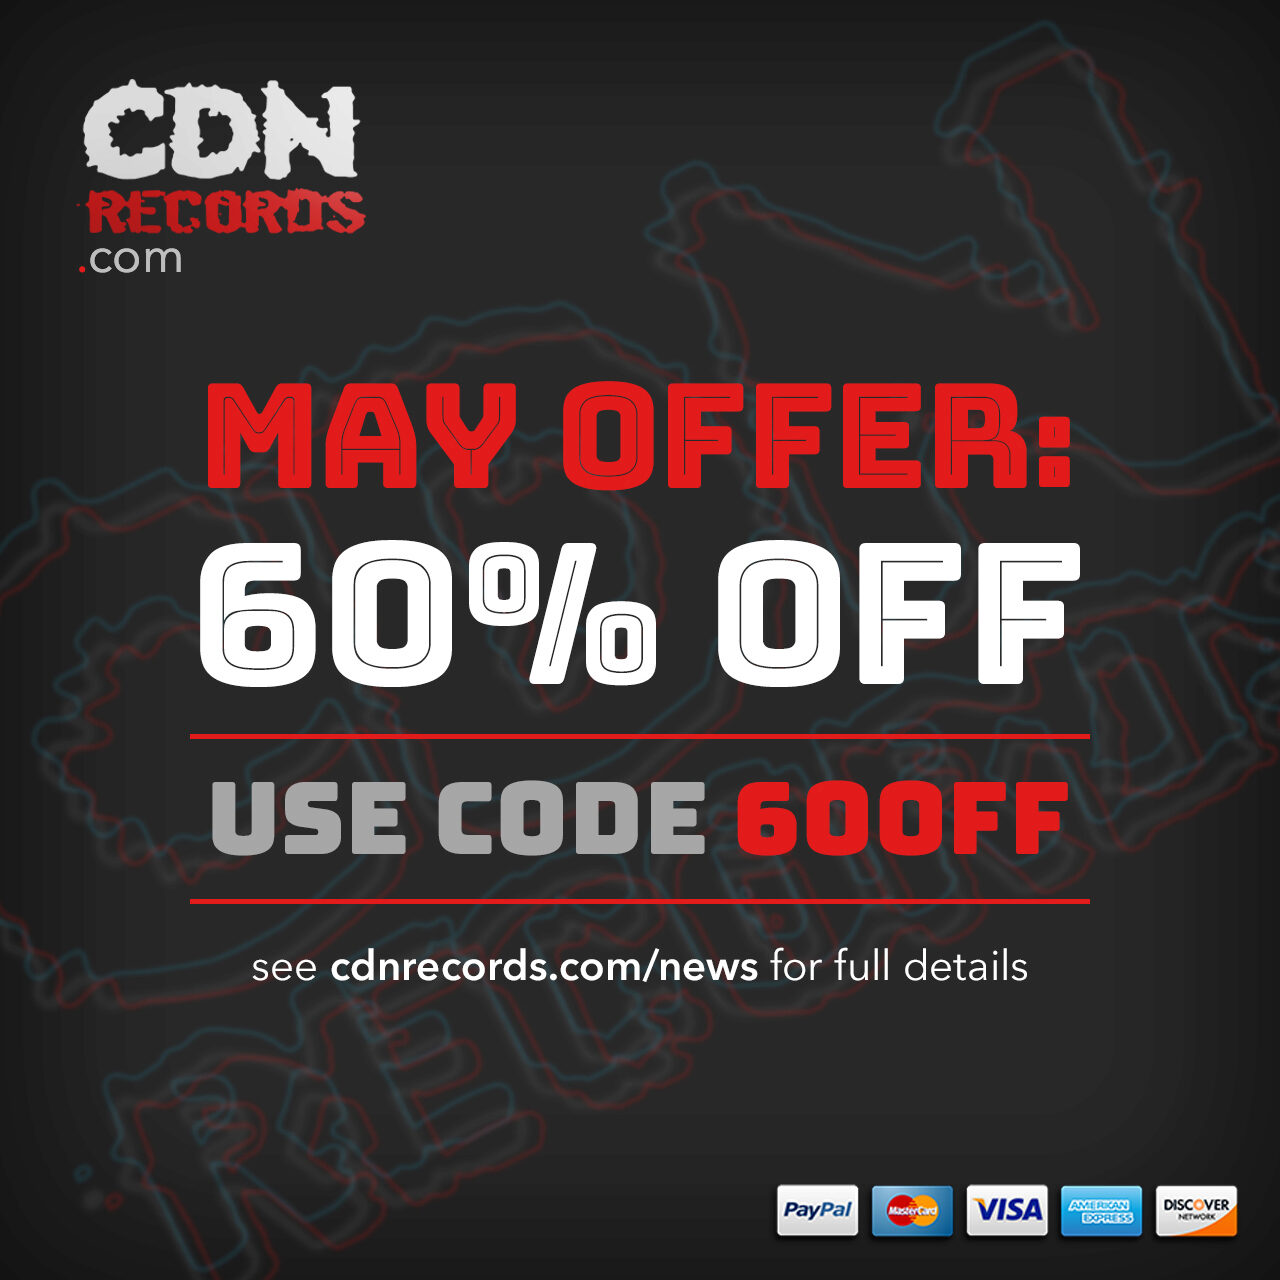 Promo graphic for 60% off in May